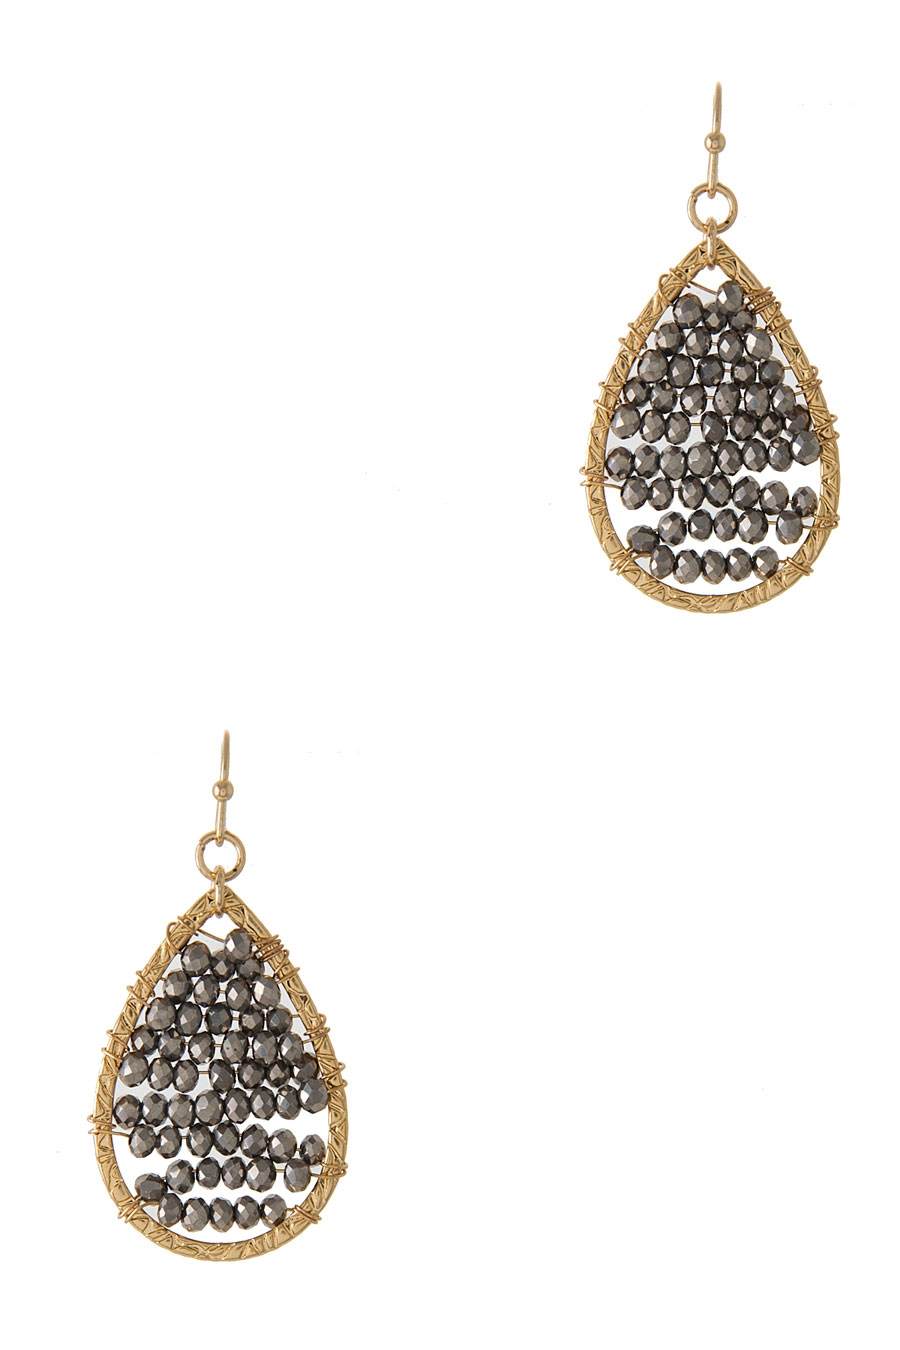 GLASS BEADS TEARDROP EARRING - orangeshine.com